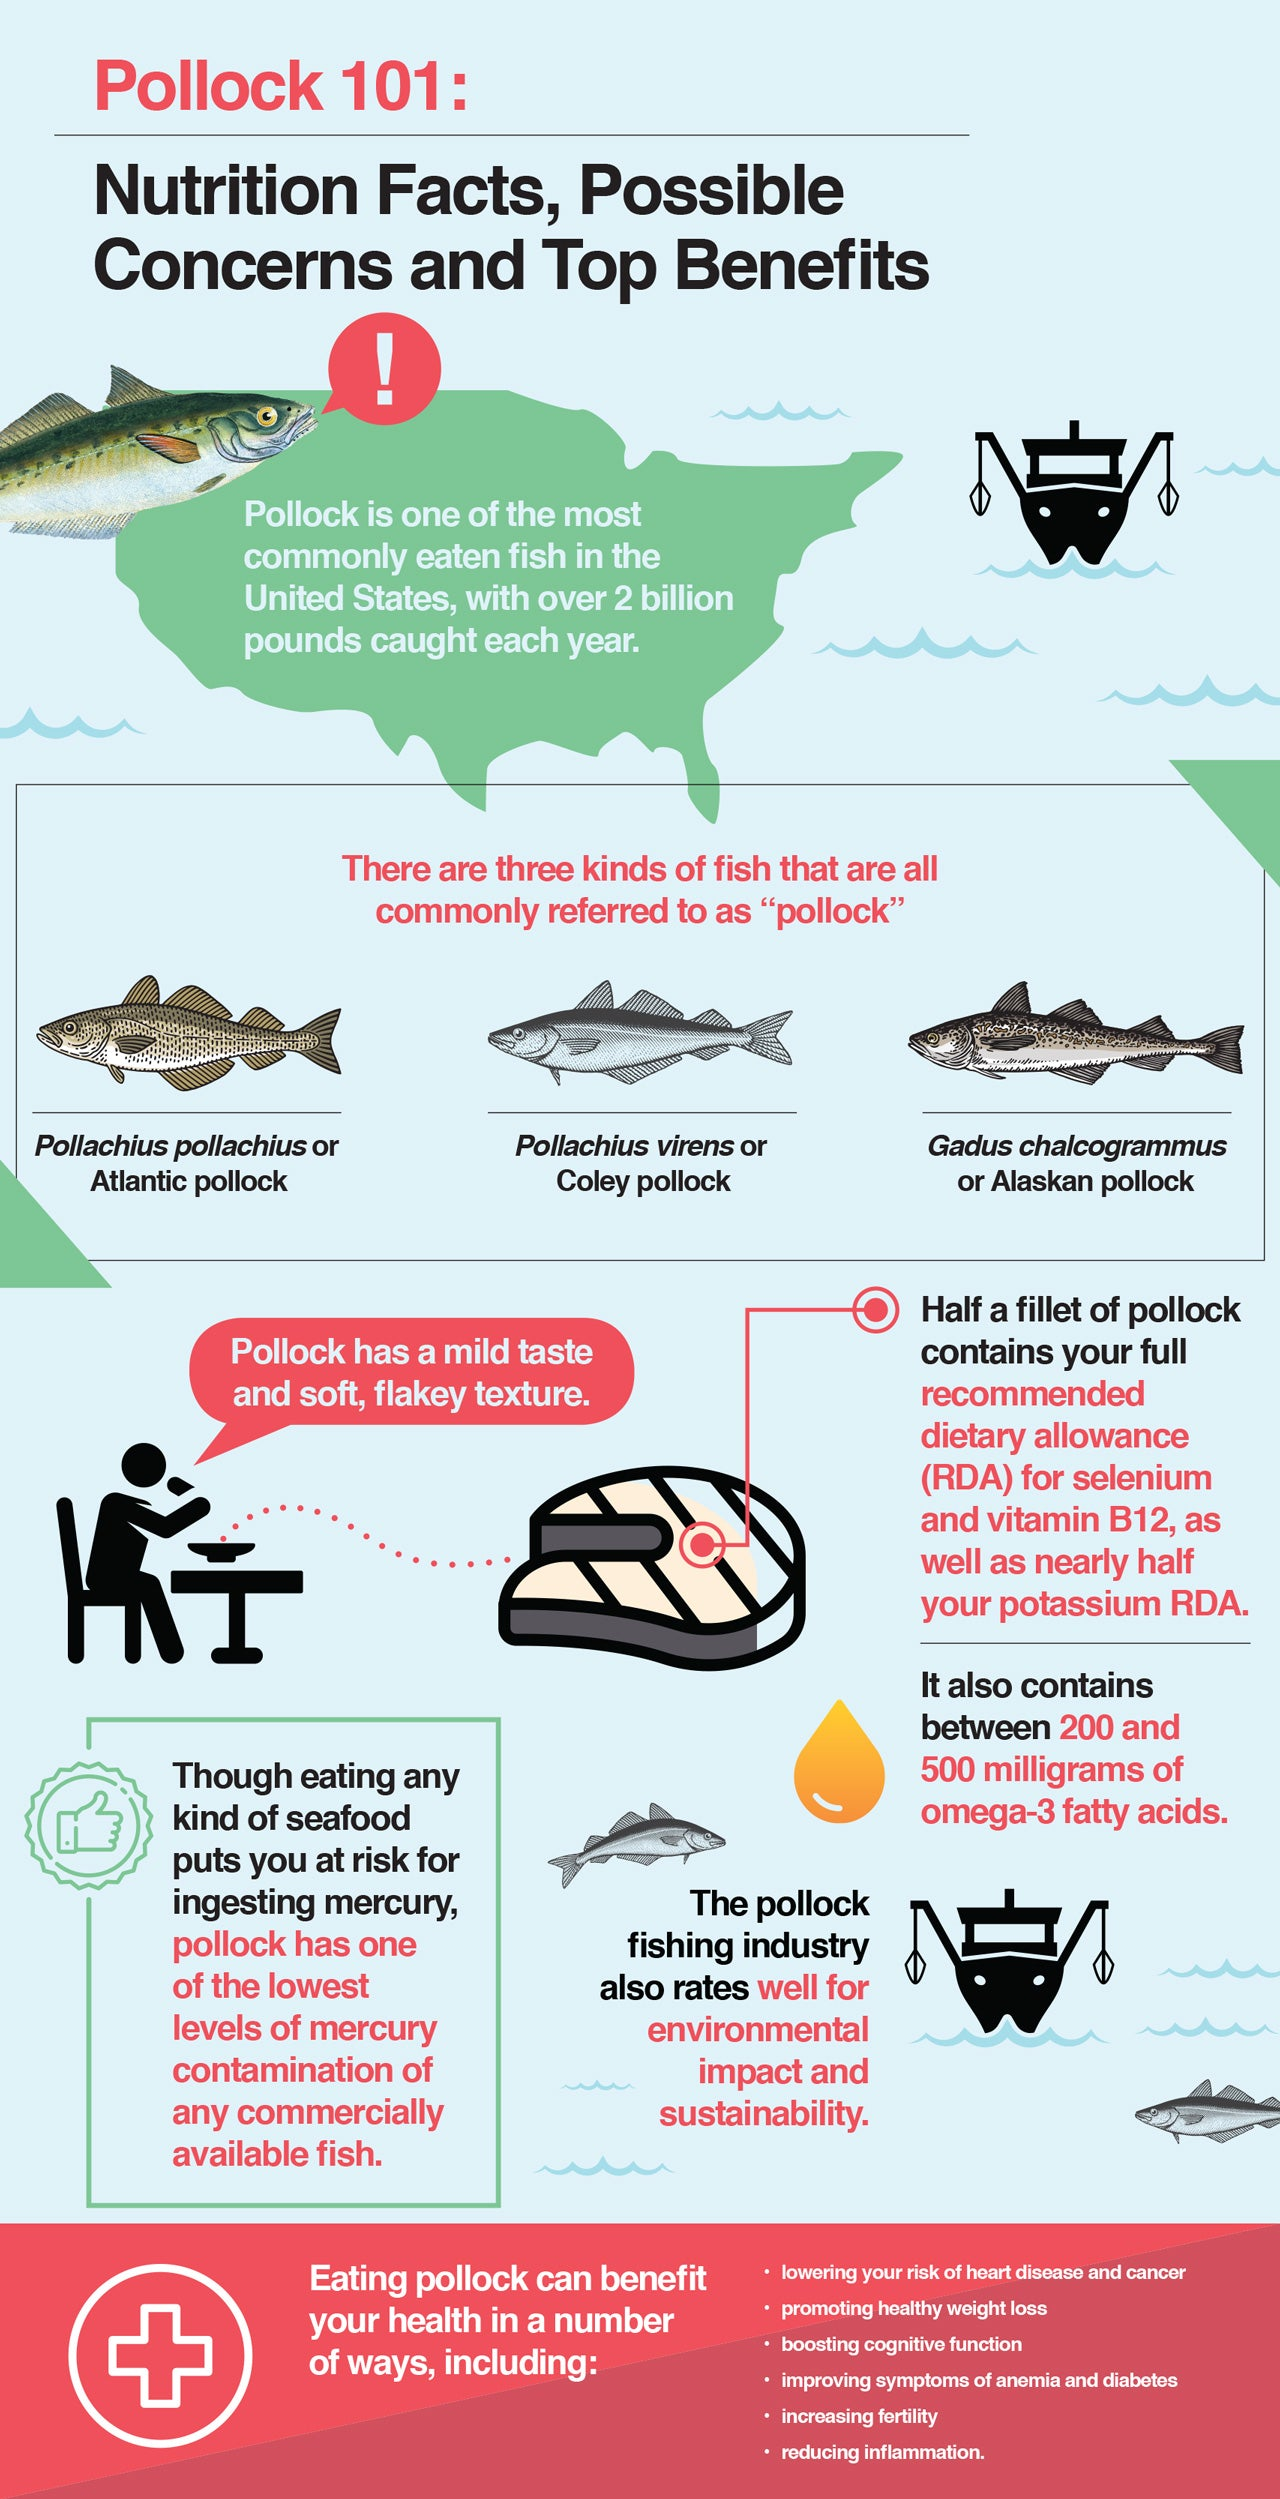 Here are the nutritional values and concerns of consuming Pollock.